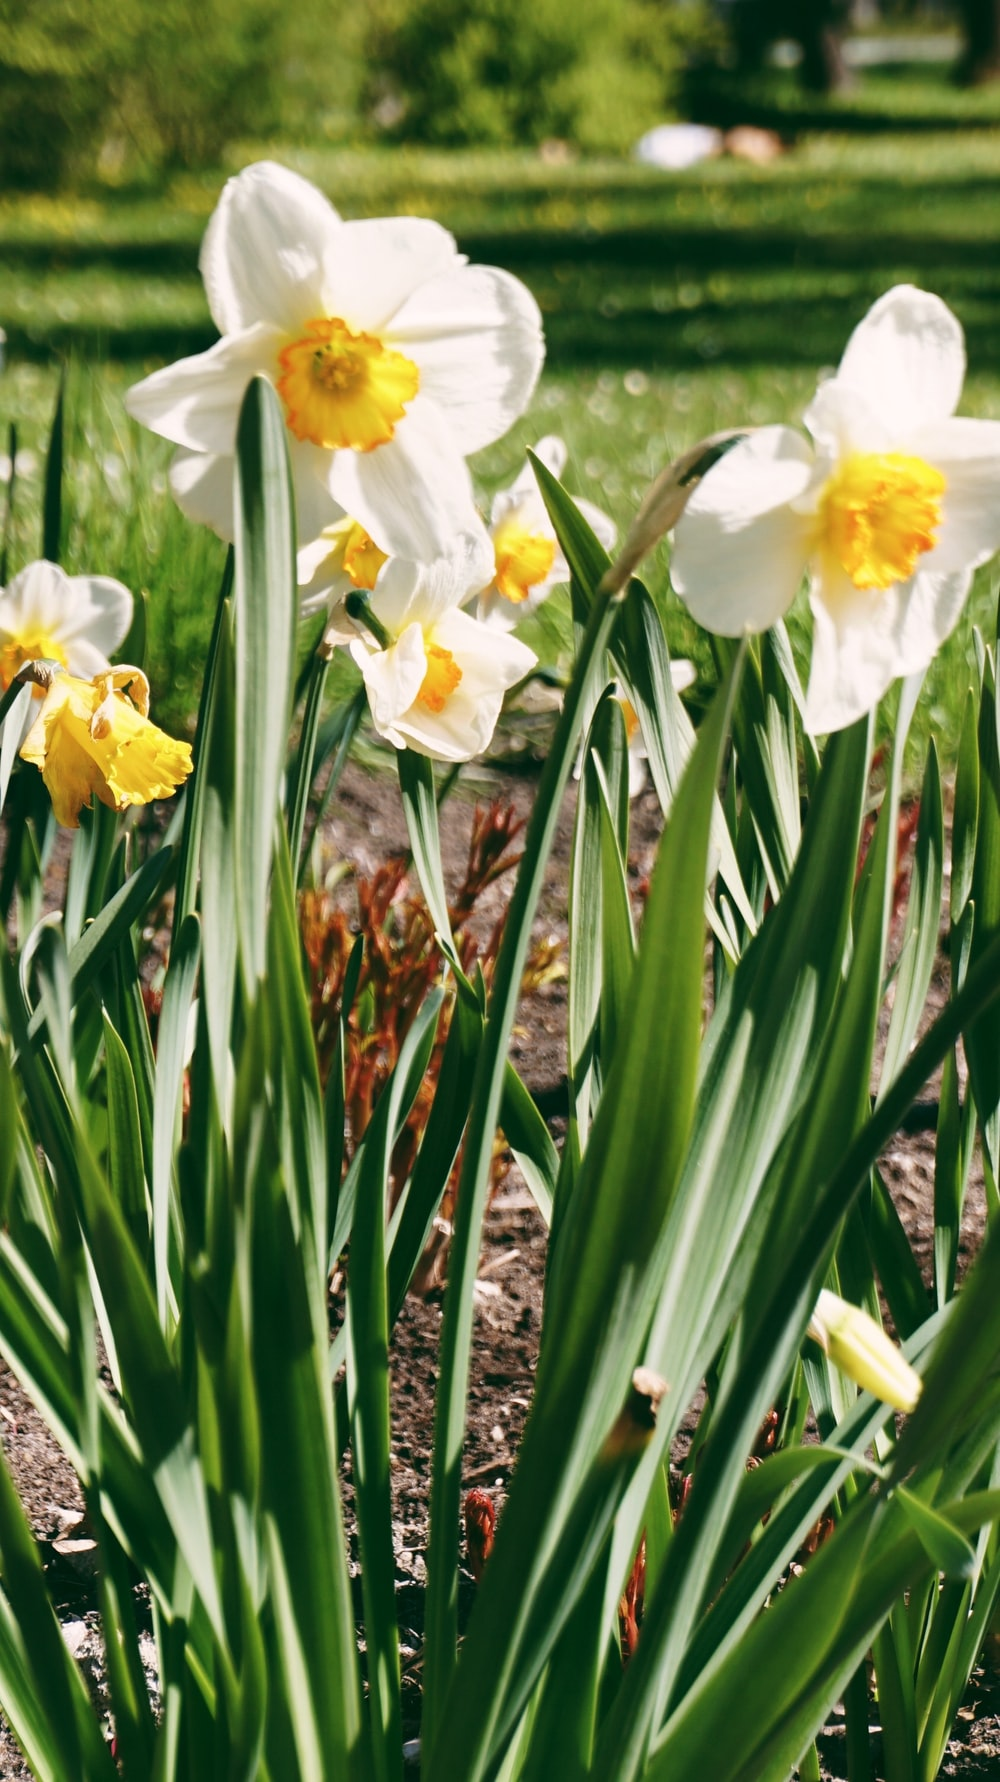 yellow daffodils in bloom during daytime